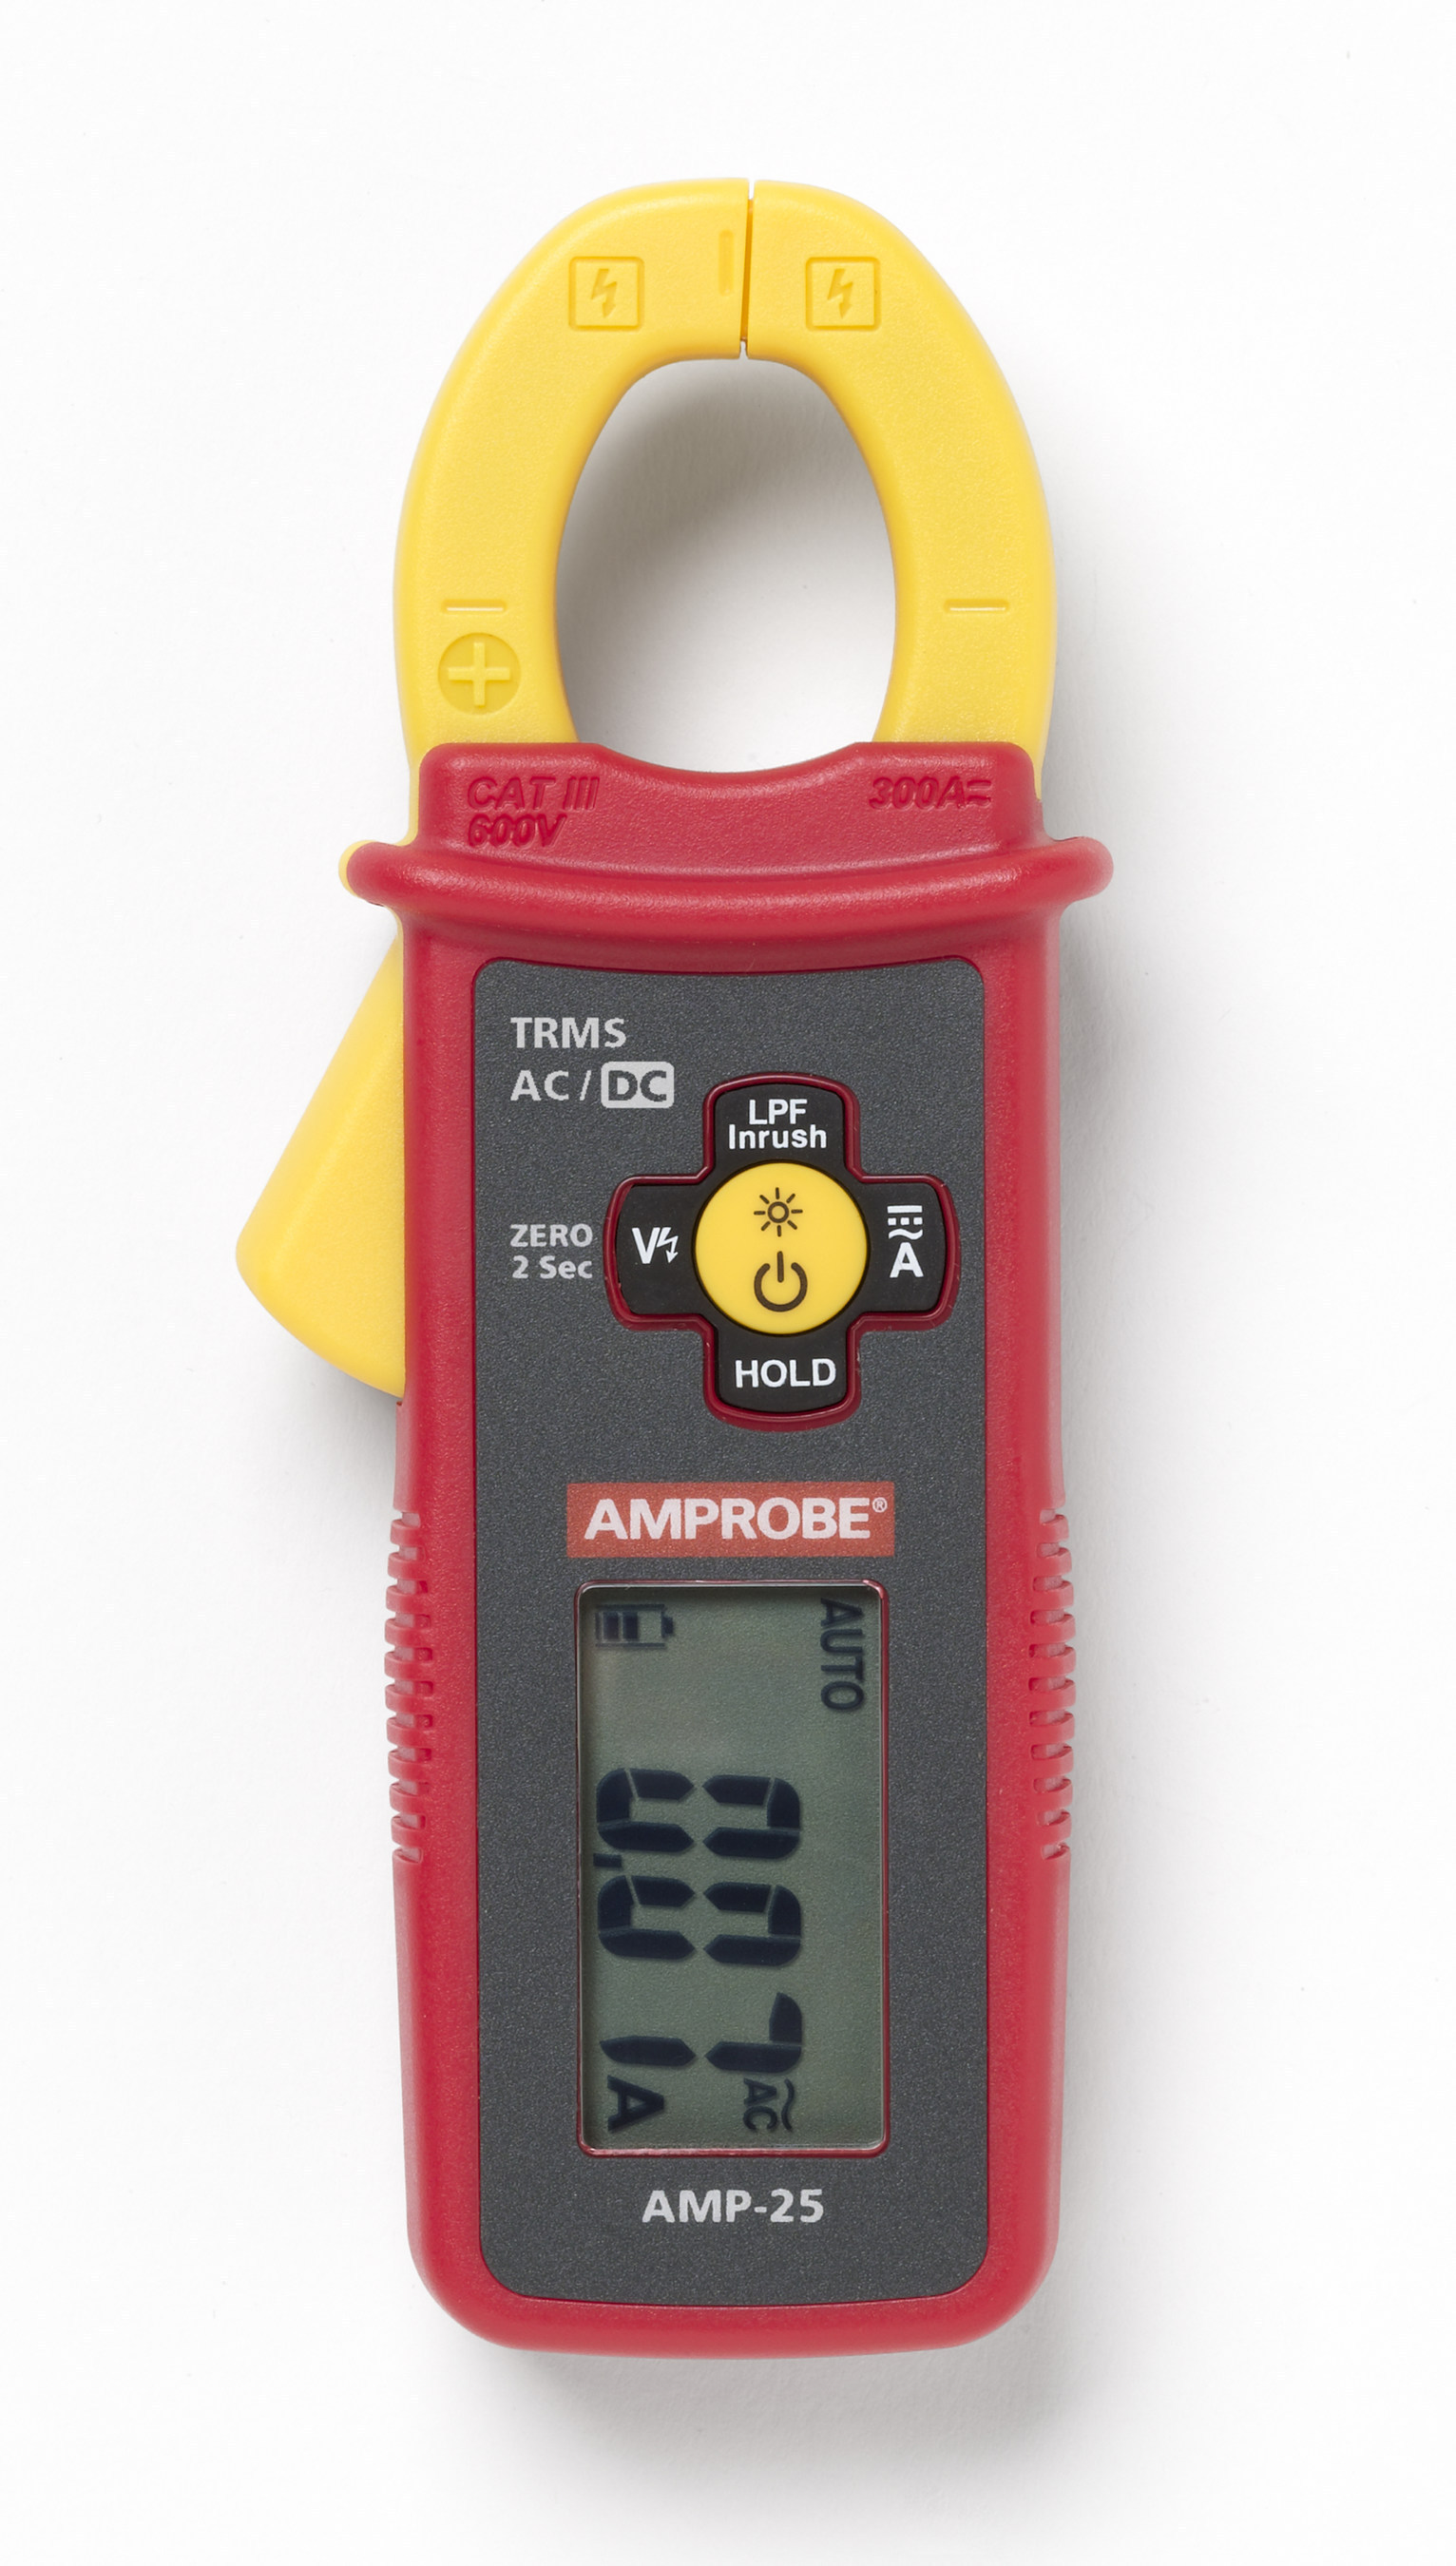 Amprobe Amp 25 Ac Dc Trms Mini Clamp Packs Key Troubleshooting Electric Noncontact Voltage Detector The Home Depot Canada 58 Inches Tall Measures Load 60